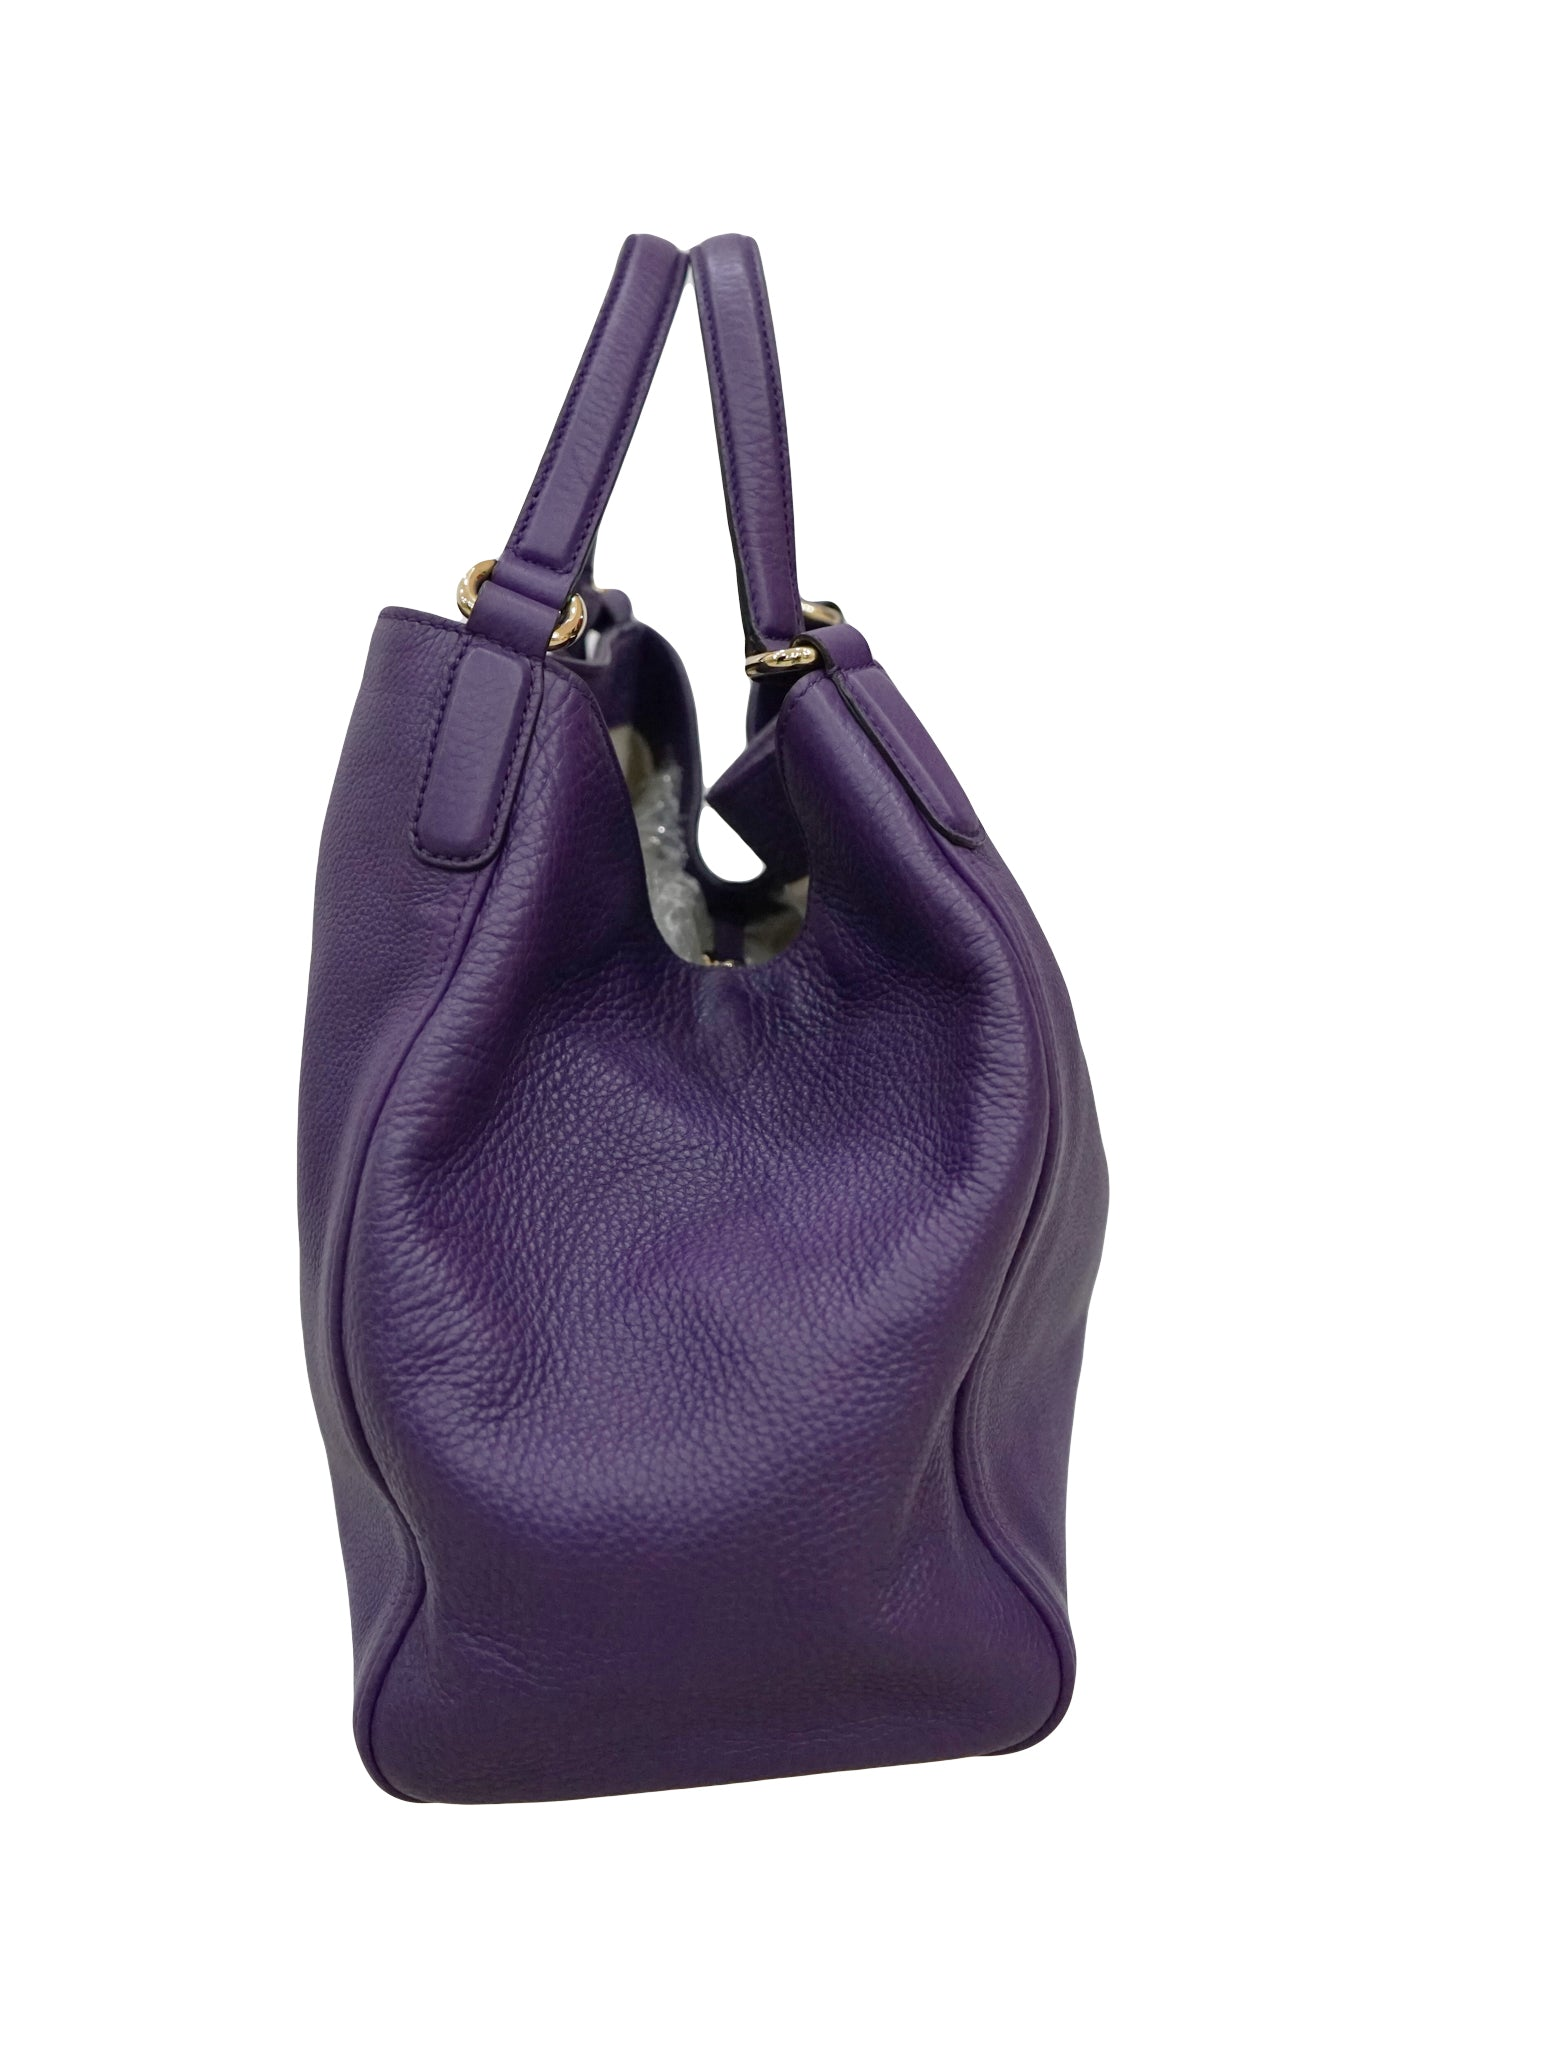 PEBBLED LEATHER MEDIUM SOHO HOBO BAG